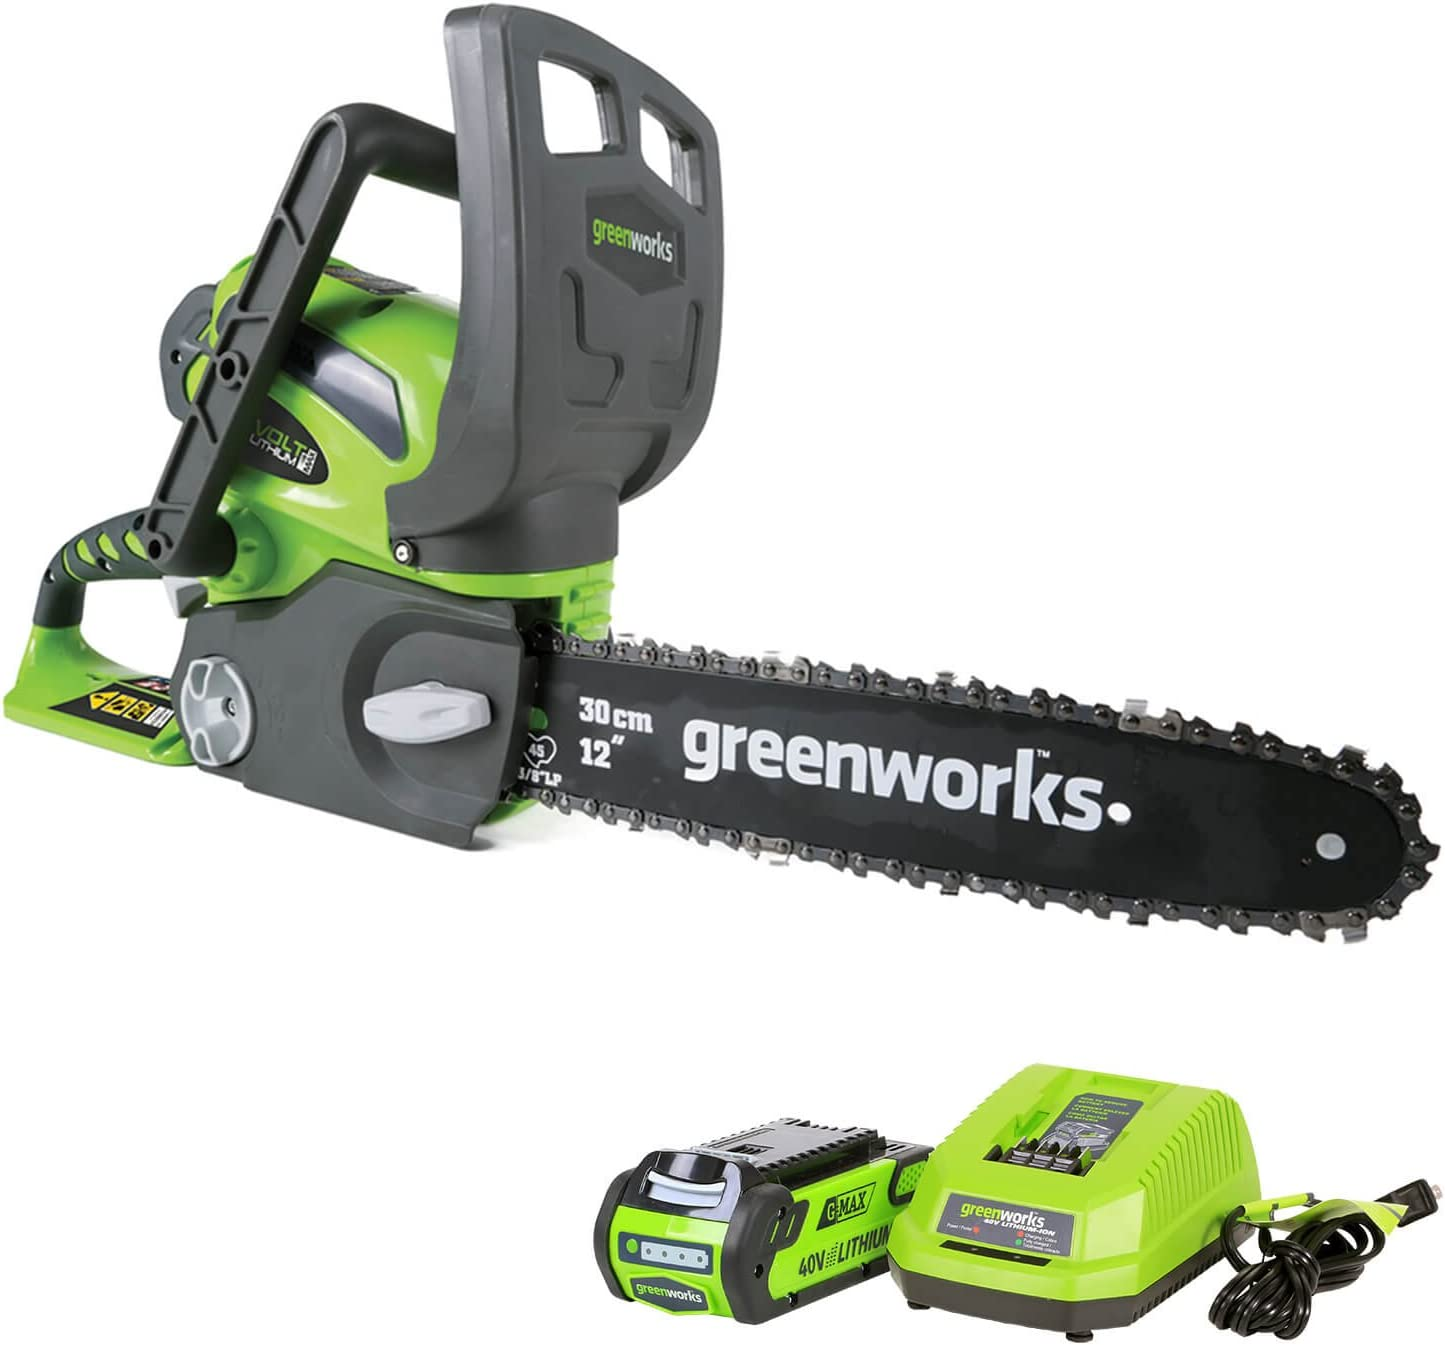 Best Cordless Chainsaw in 2020: Reviews & Buying Guide 4